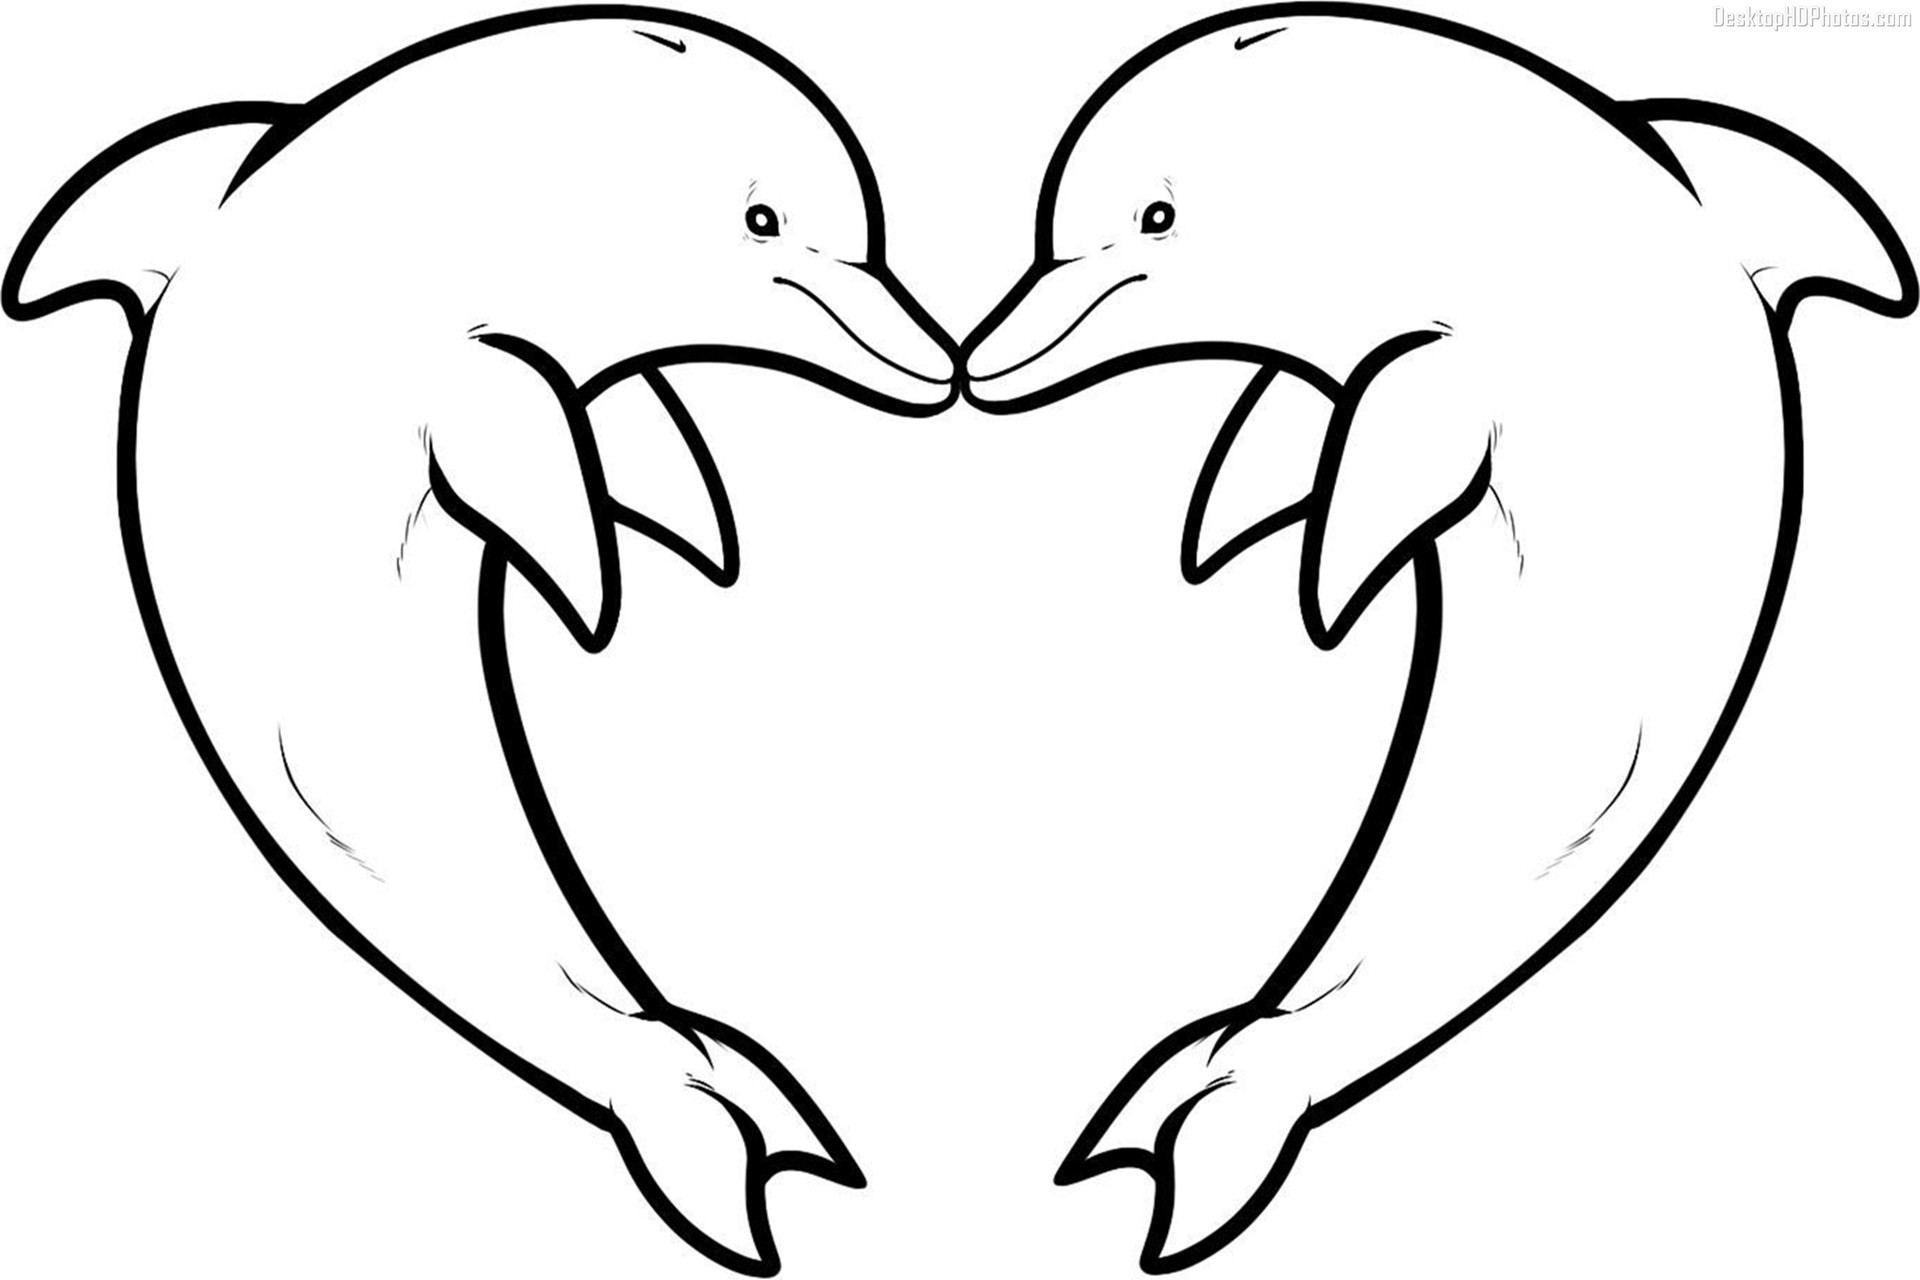 dolphins to color and print dolphin coloring pages download and print for free print color to dolphins and